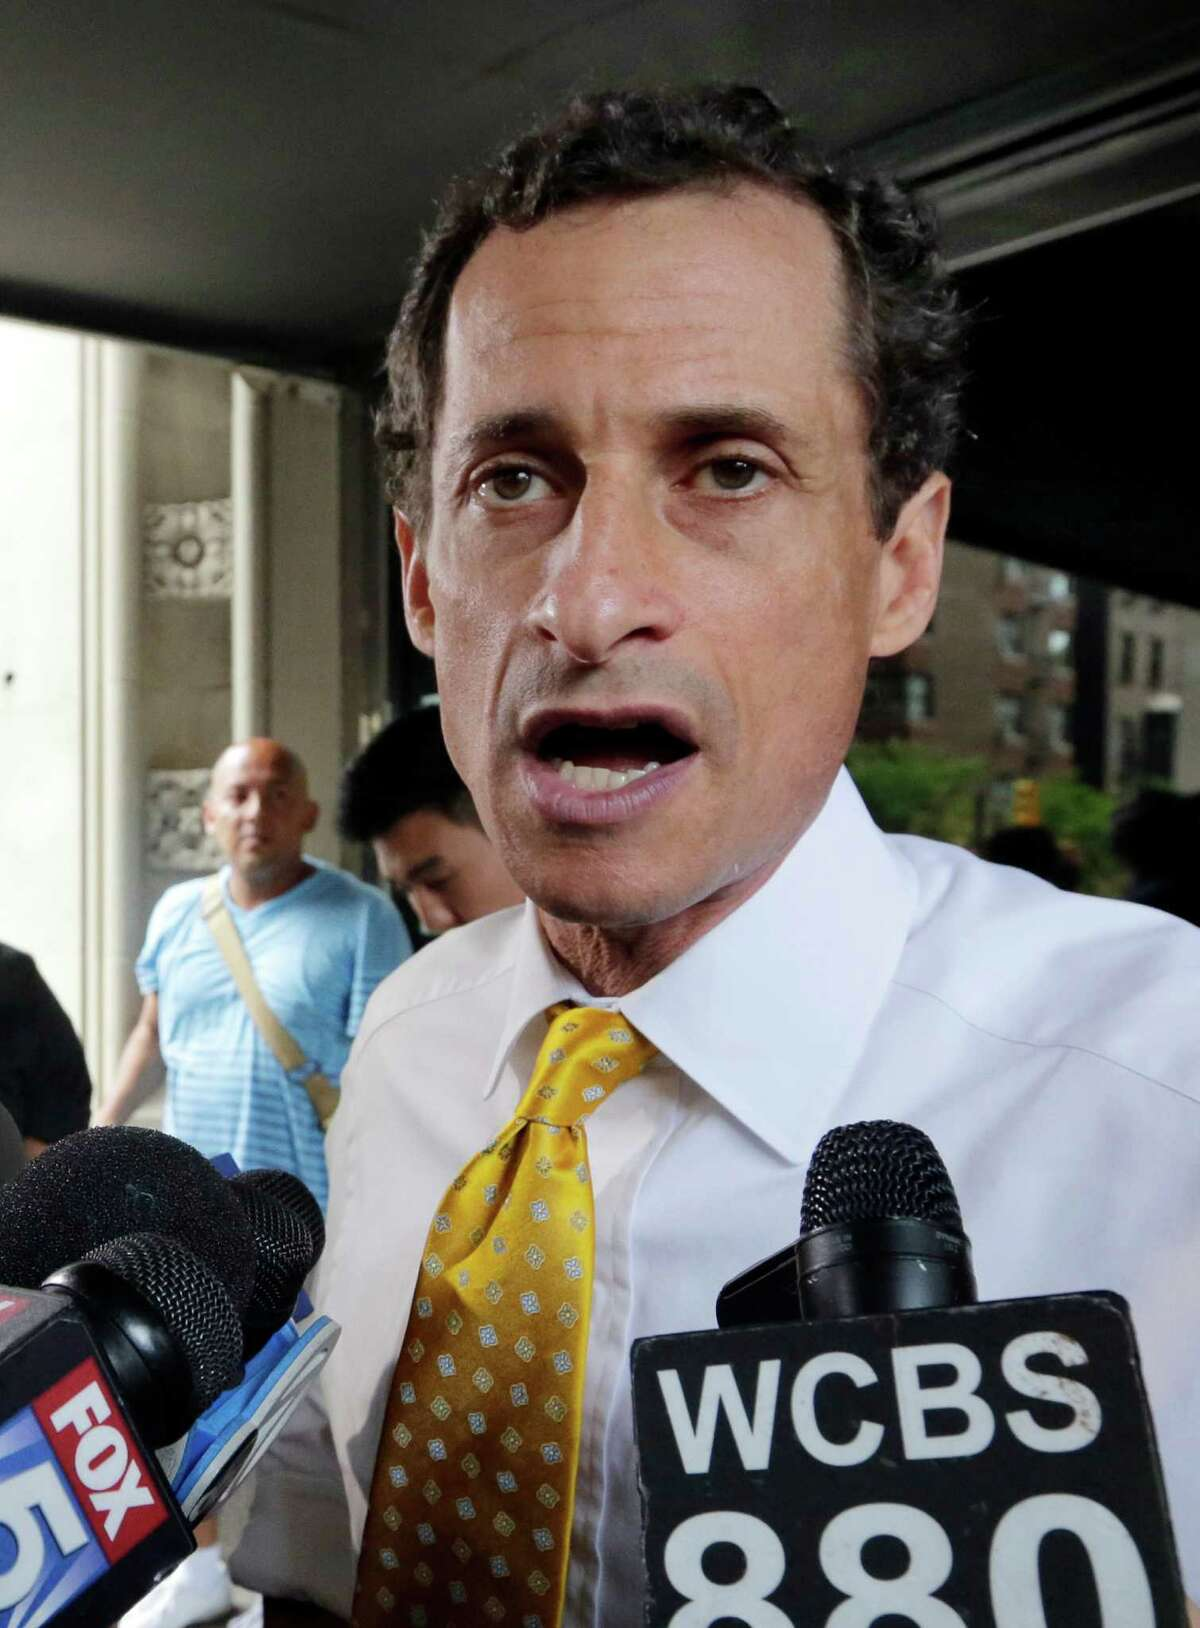 New York City mayoral candidate Anthony Weiner speaks to reporters as he leaves his apartment building in New York on Wednesday, July 24, 2013. The former congressman acknowledged sending explicit text messages to a woman as recently as last summer, more than a year after sexting revelations destroyed his congressional career. (AP Photo/Richard Drew) ORG XMIT: NYRD107